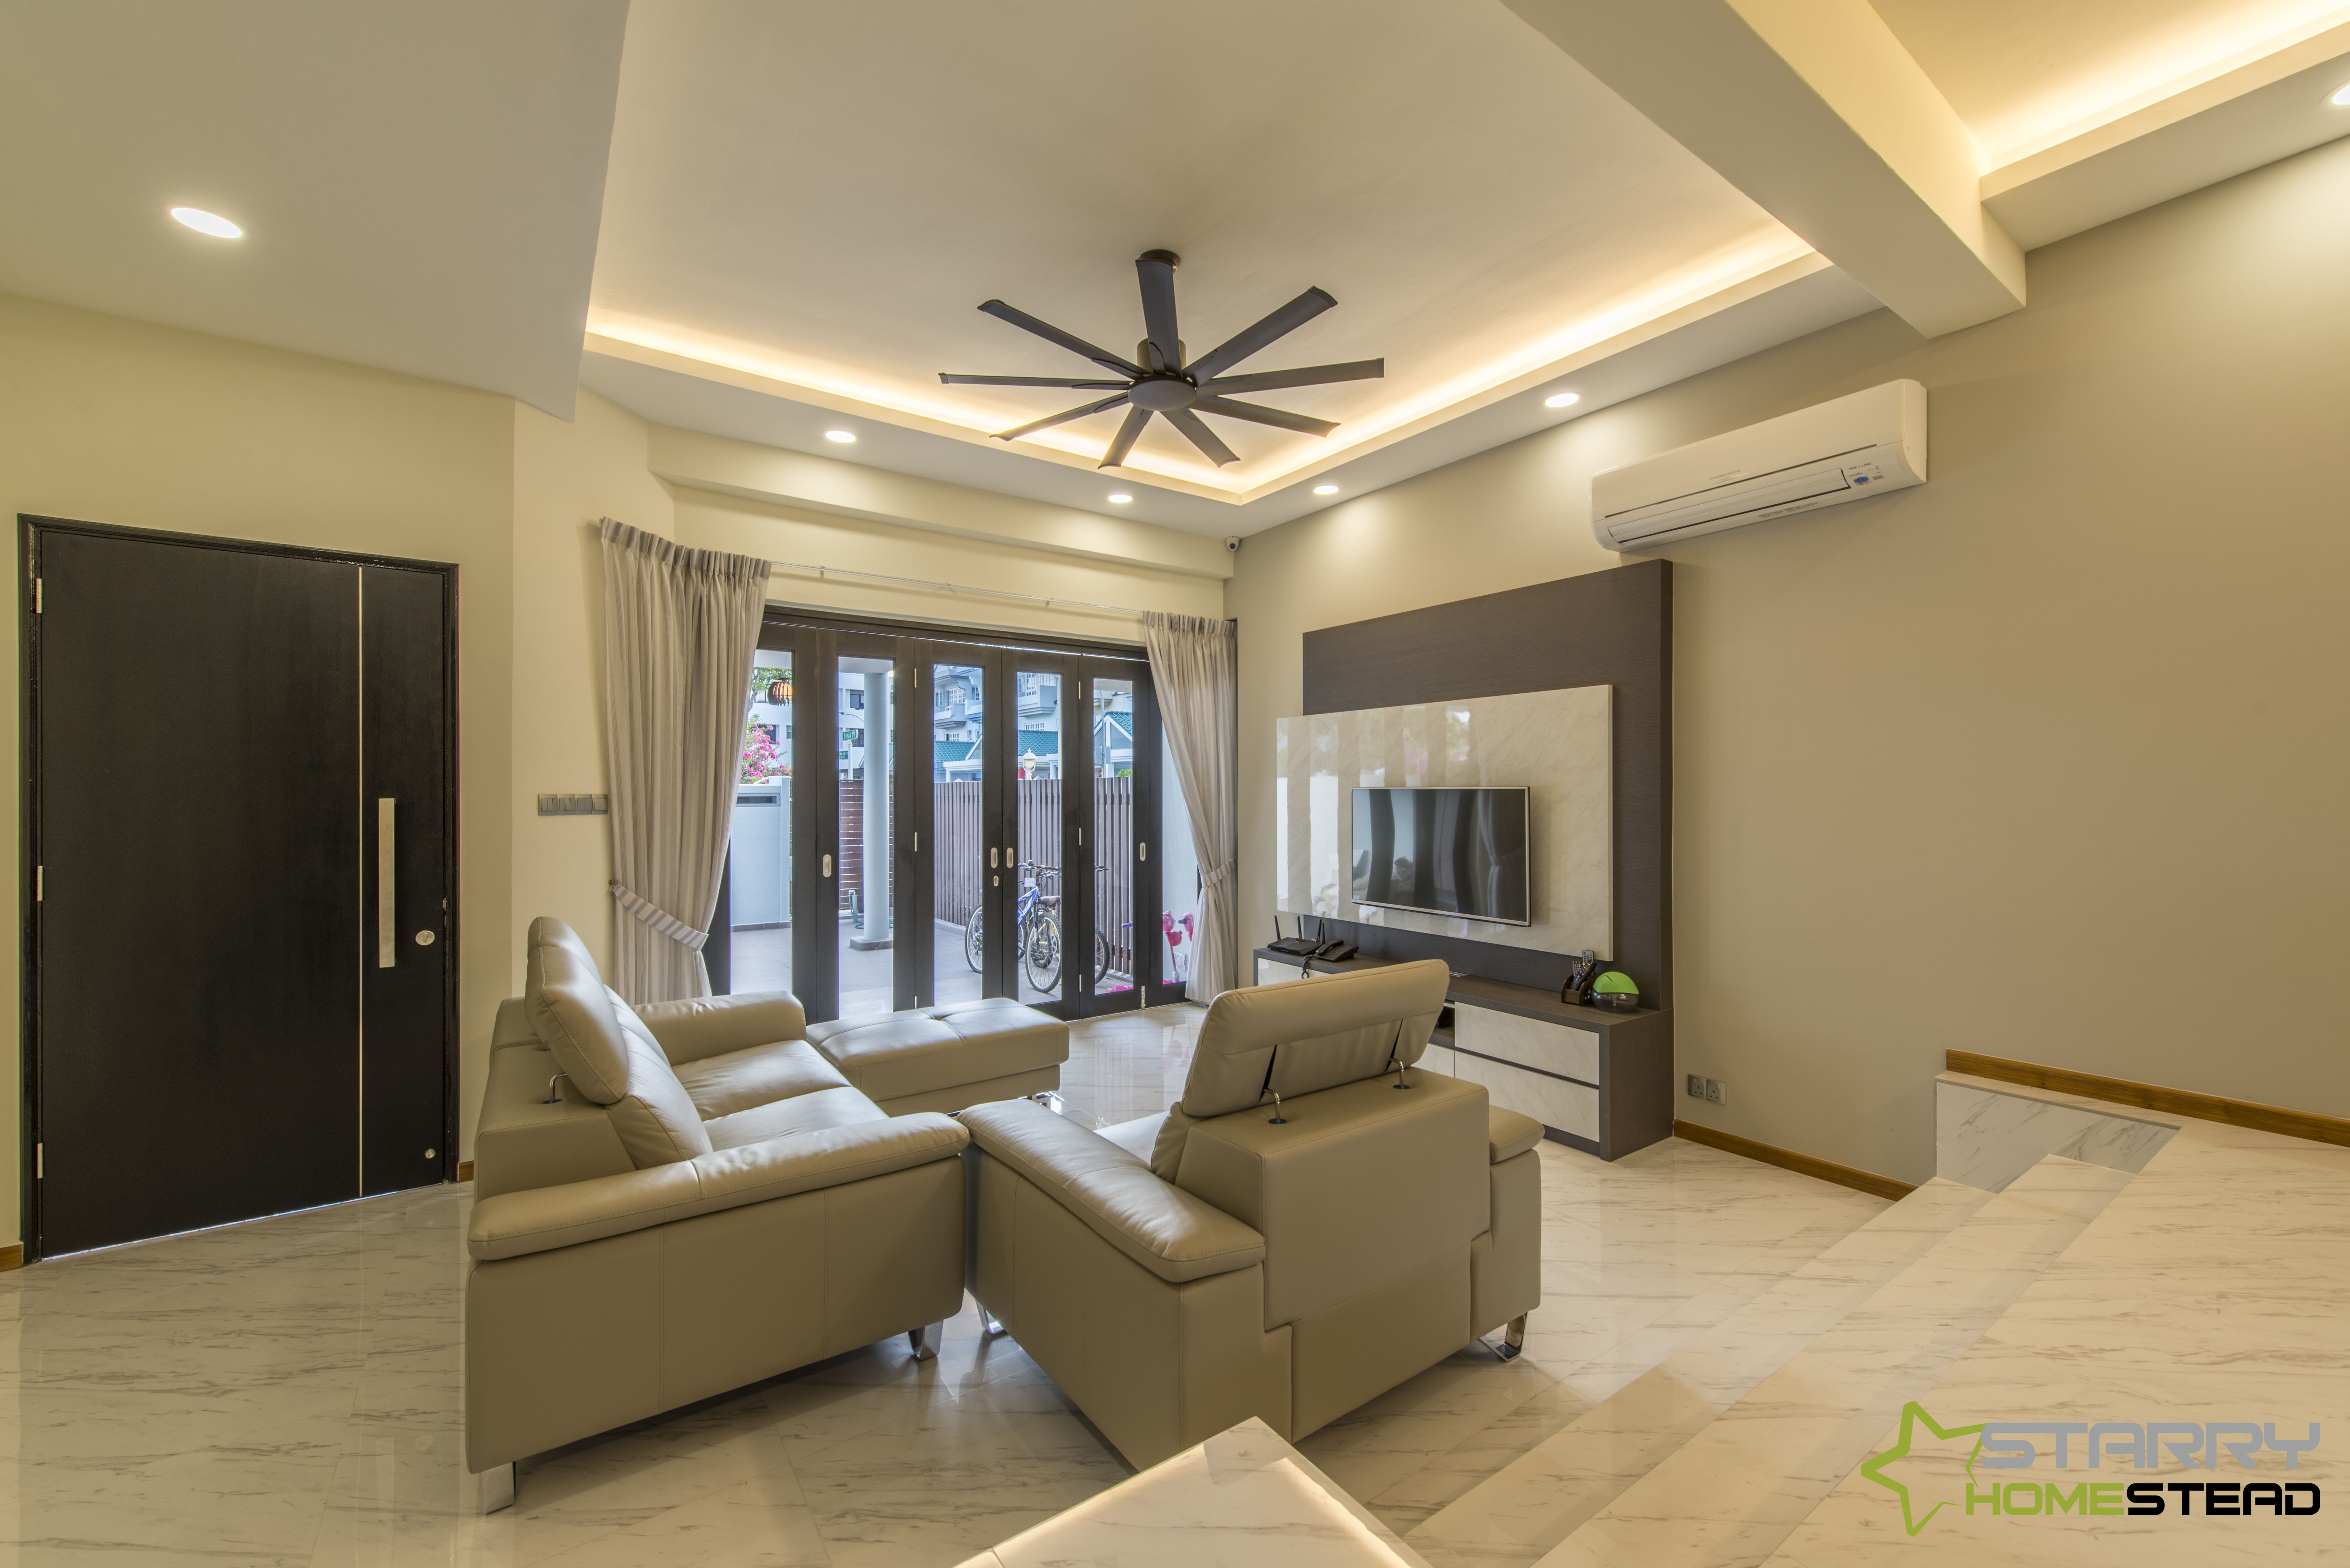 Landed Property Interior Design & Renovation